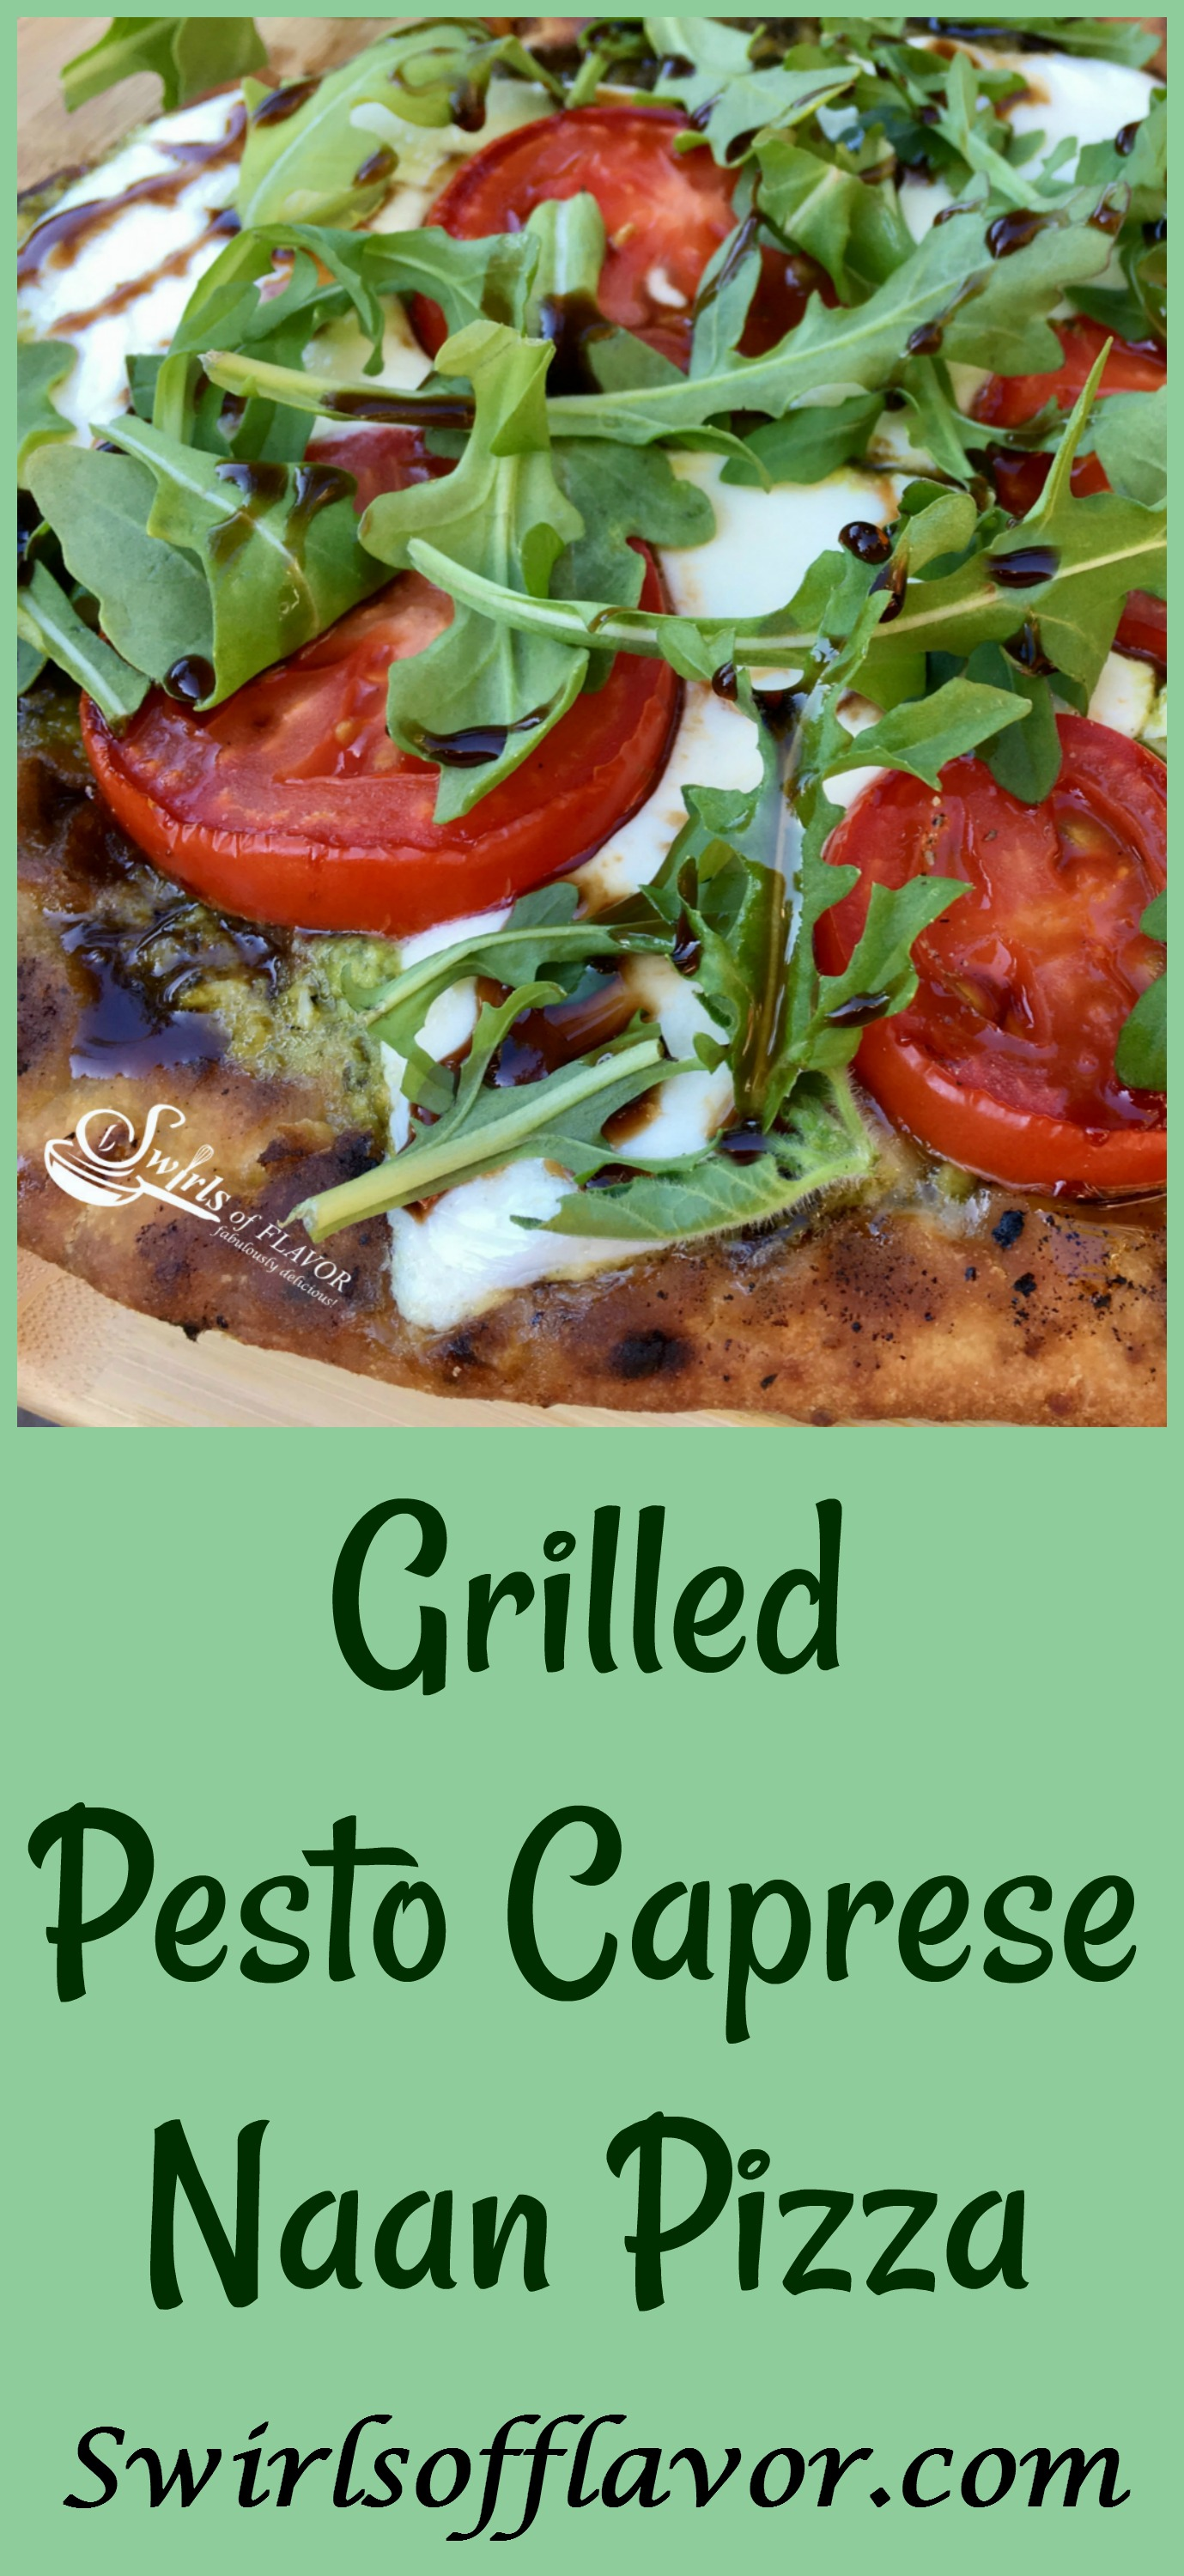 Grilled Pesto Caprese Naan Pizza made with Caprese, the beloved combination of mozzarella, tomato andbasil with balsamic vinegar,becomes an easy Meatless Monday meal or fabulous appetizer! easy recipe | grilled pizza | caprese | dinner | grilling | pesto | pizza | #swirlsofflavor